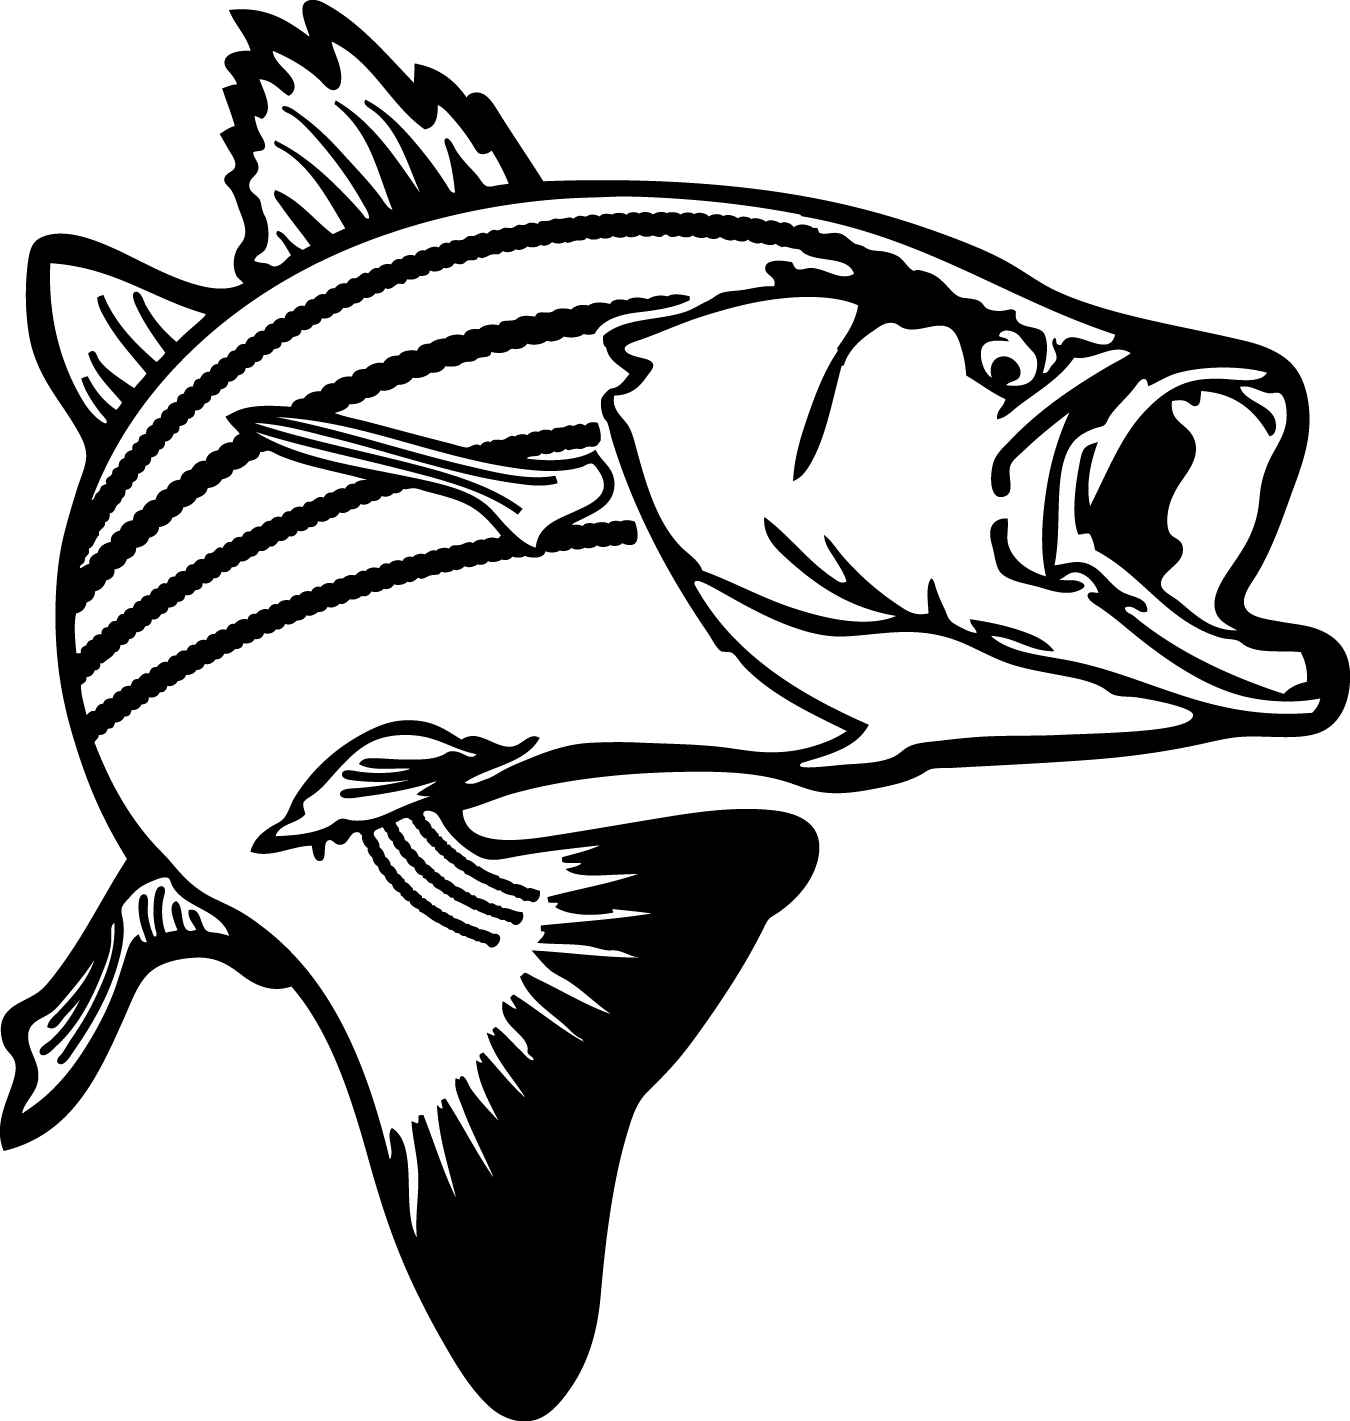 Salmon clipart #1, Download drawings